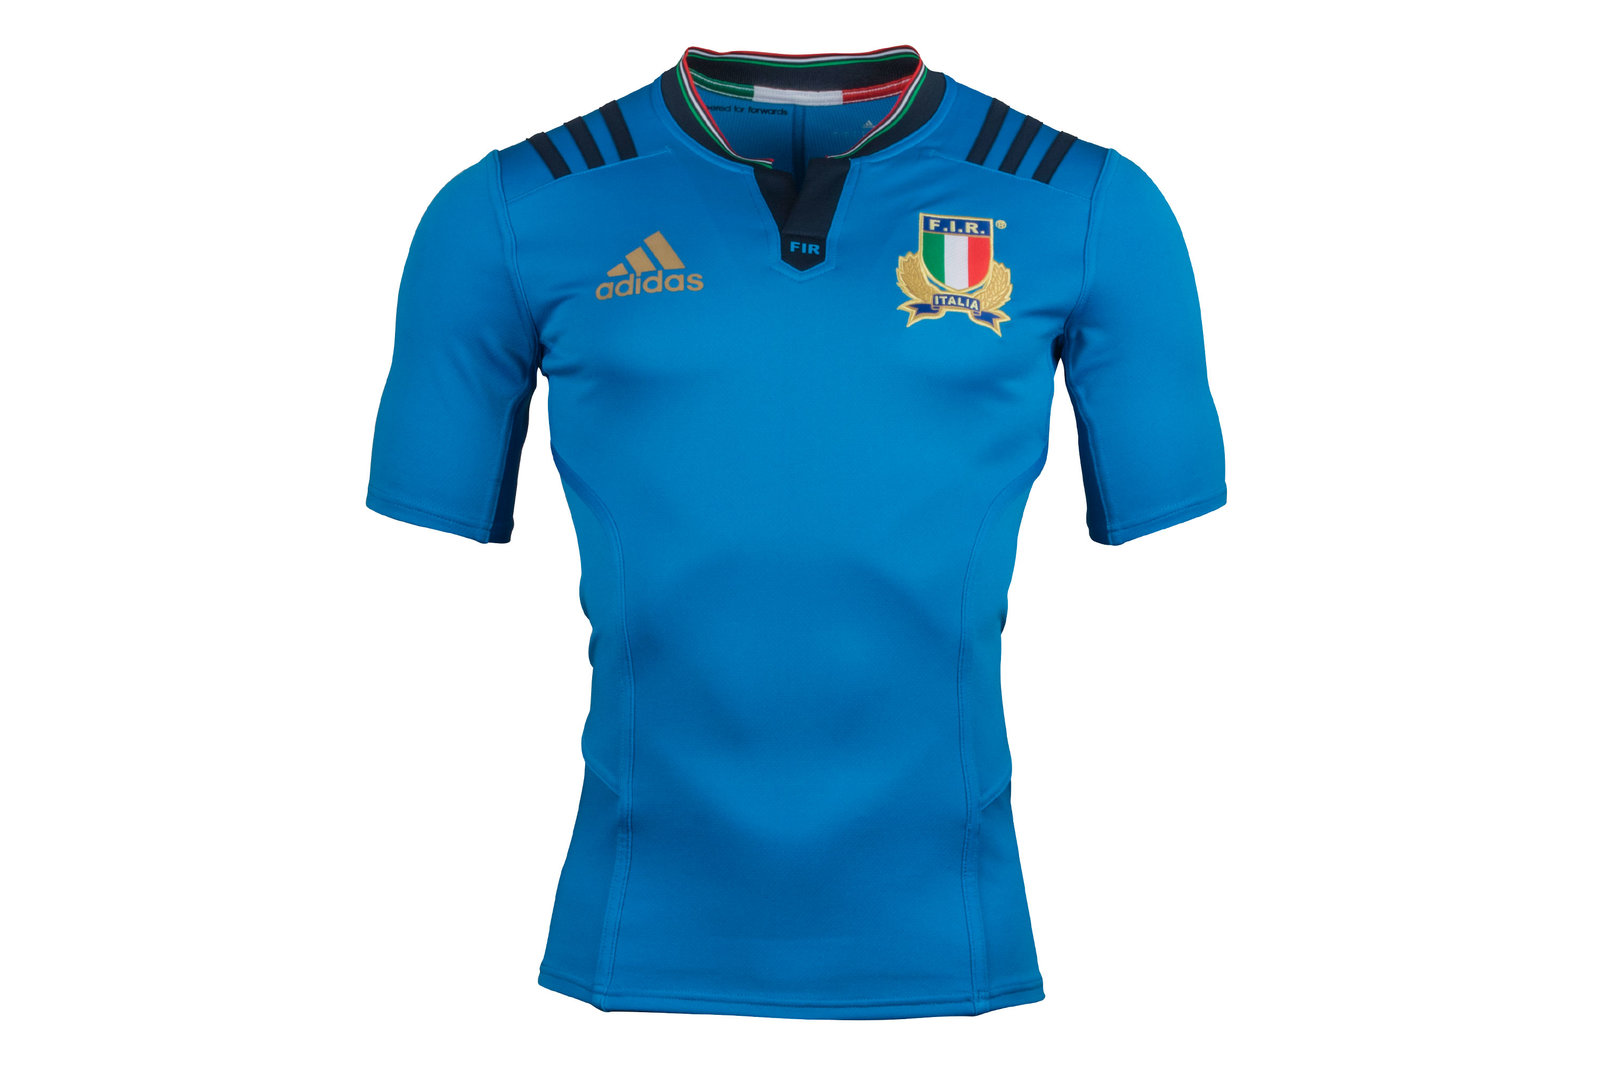 adidas Mens Italy 2016 Rugby/17 Home Home 11190 Players Authentic Test S/ S Rugby d34f05f - grind.website